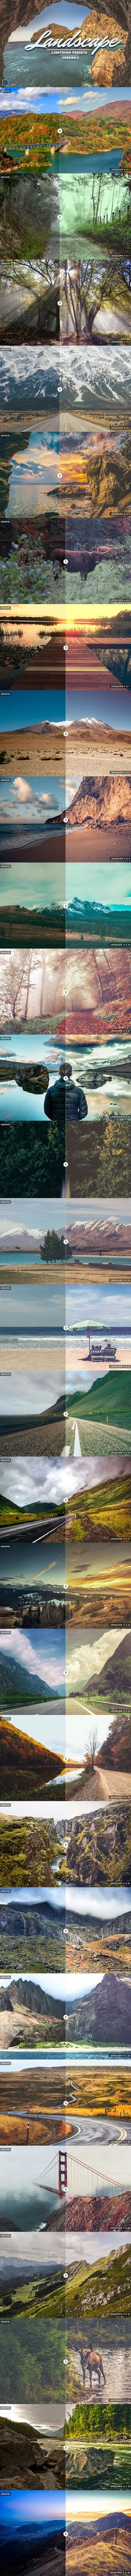 30 Free Landscape Lightroom Presets Ver. 2 in this pack we created new cool effects to give beginners and professional photographers a stunning, unique effects. via @creativetacos